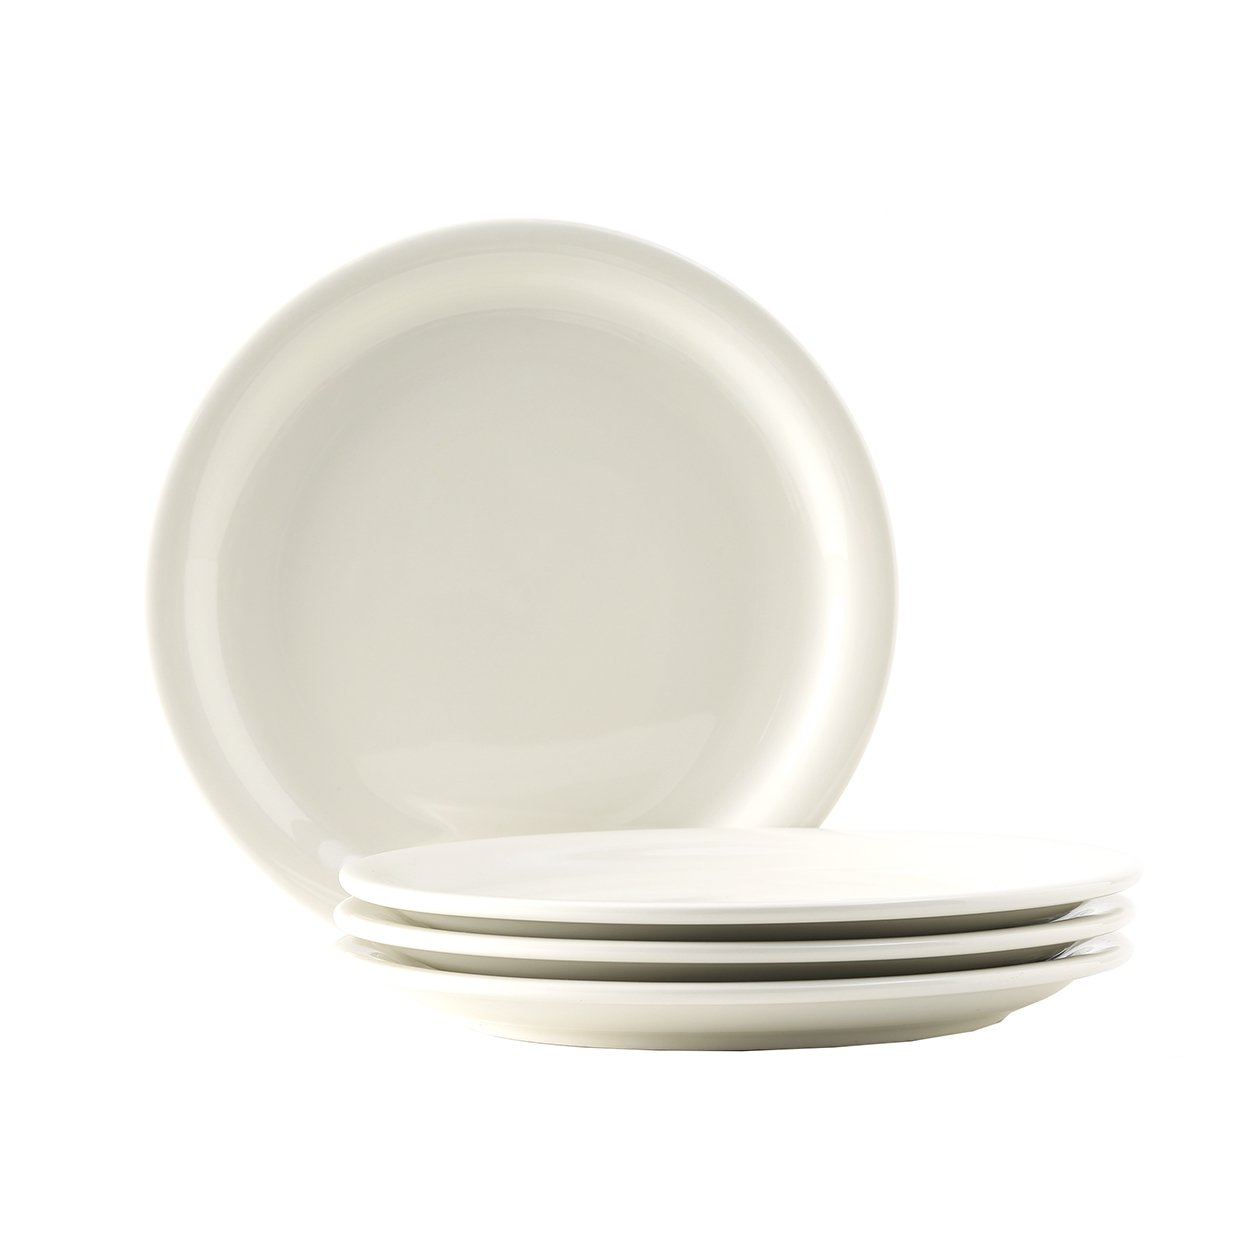 """Tuxton Home Nevada American White (Eggshell) 10 - 1/2"""" Narrow Rim Dinner Plate - Set of 4; Heavy Duty; Chip Resistant; Lead and Cadmium Free; Freezer to Oven Safe up to 500F"""